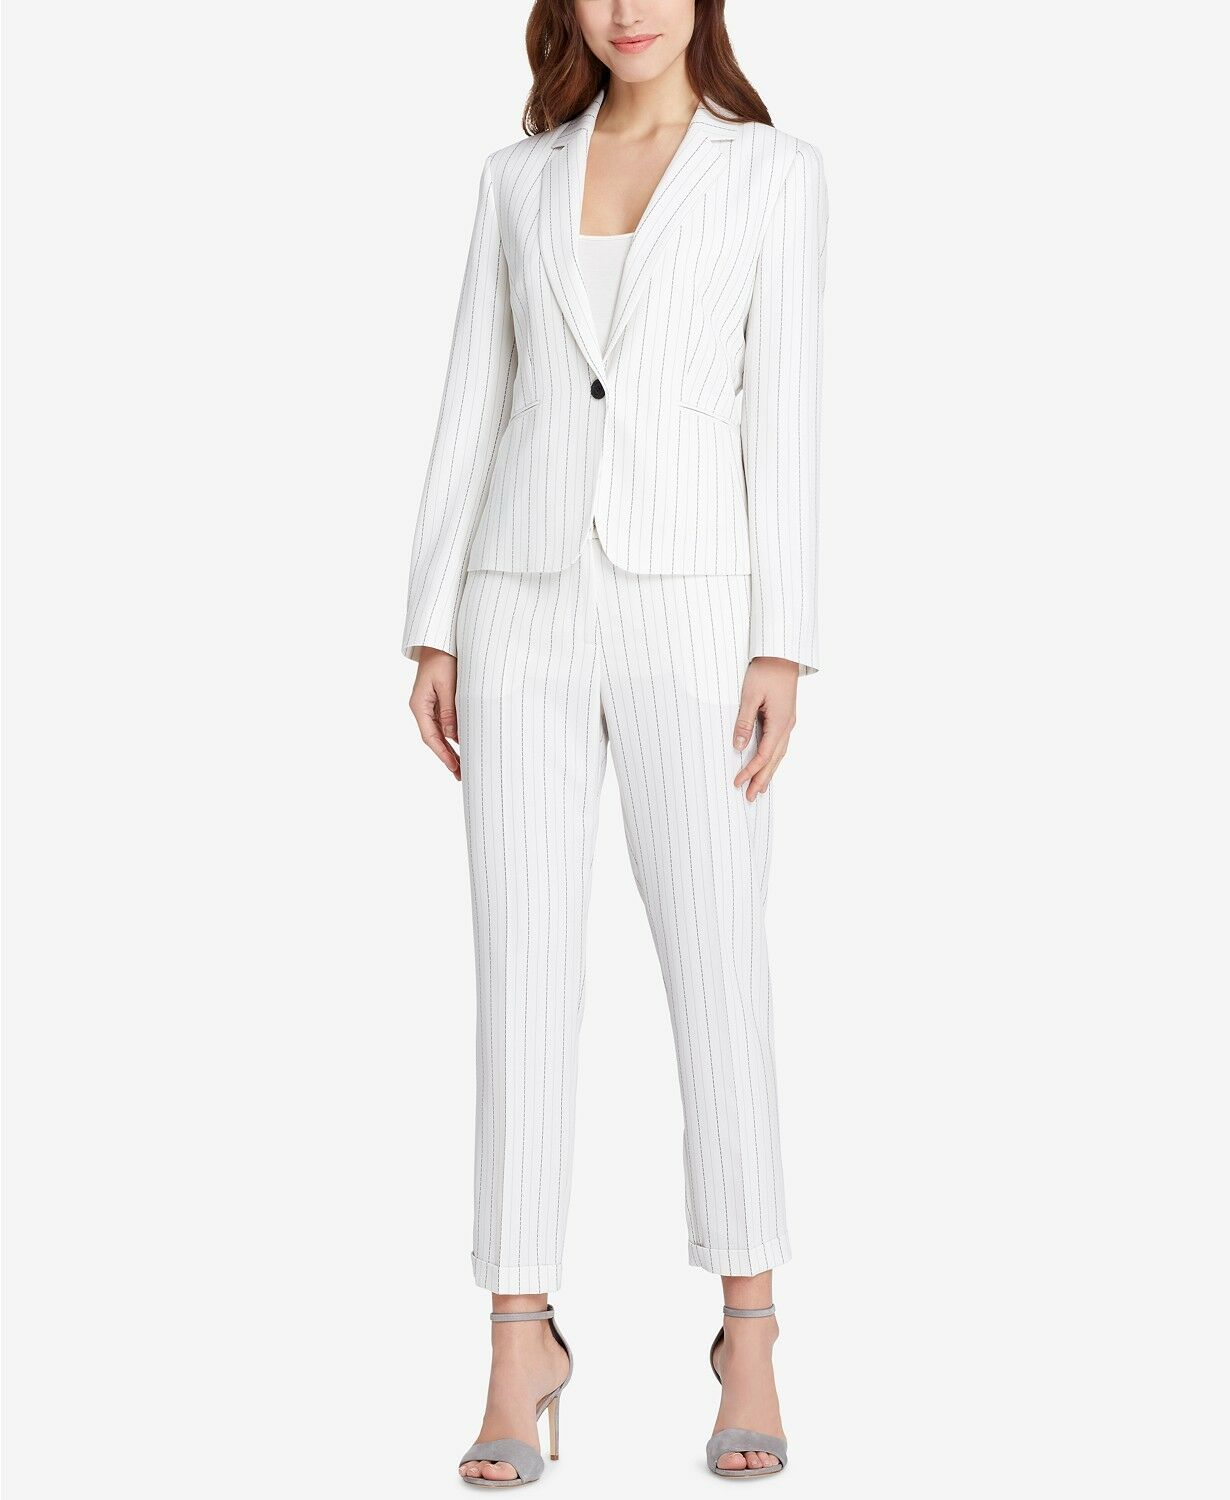 Tahari ASL Pinstriped One-Button Pantsuit Petite Size 4p  F303 MSRP  290.00